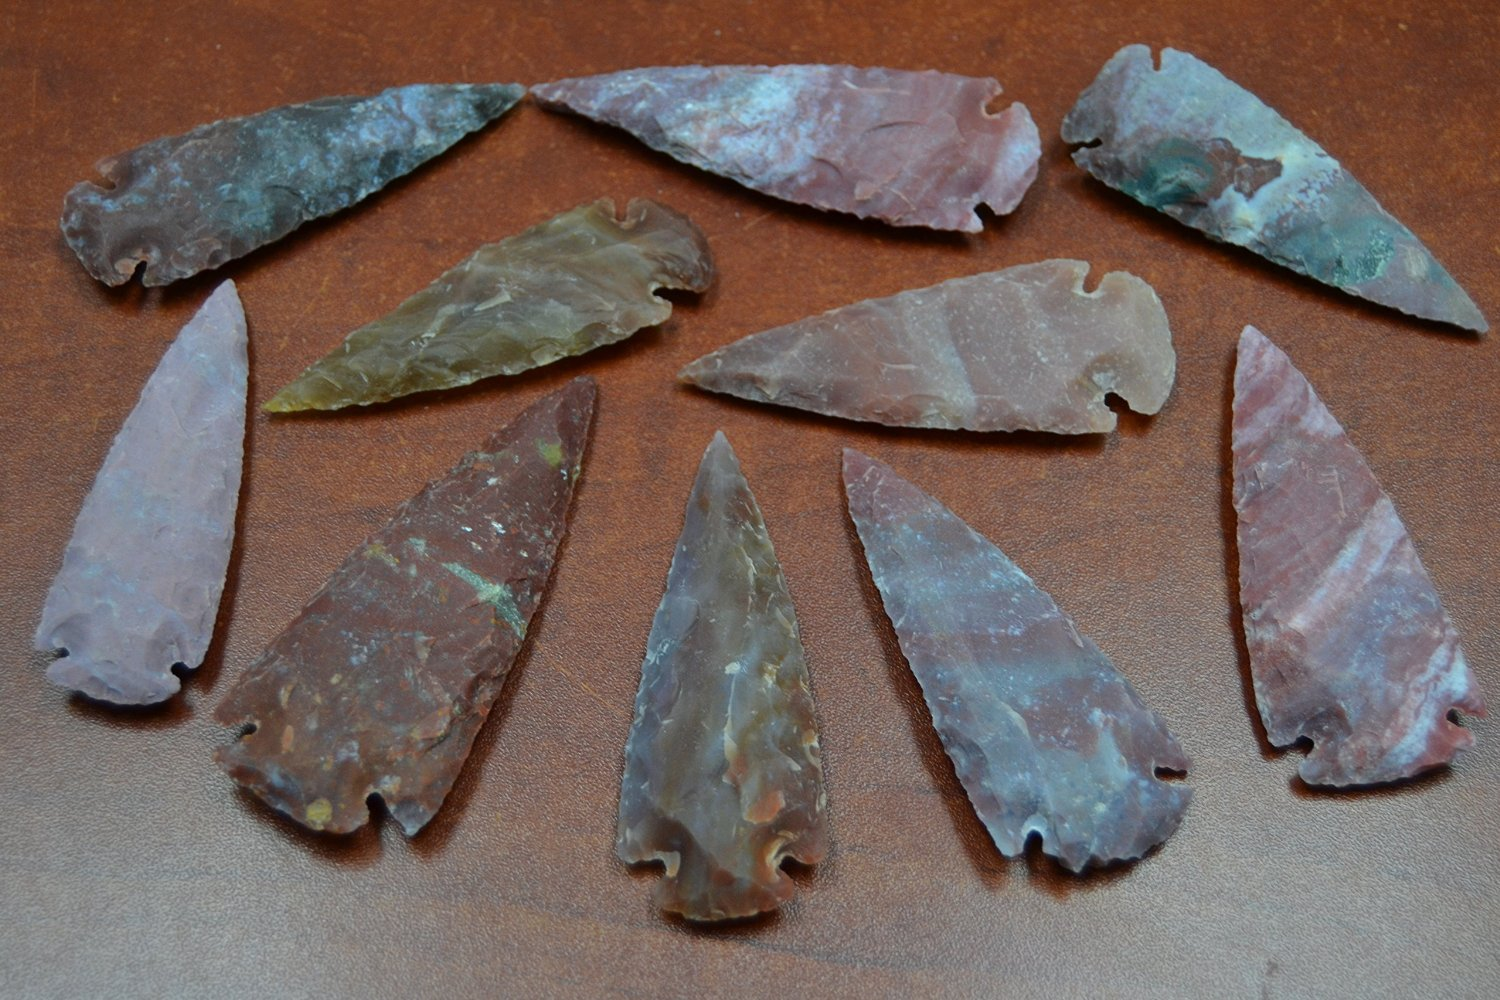 10 Pcs Red Agate Stone Spearhead Arrowhead Point